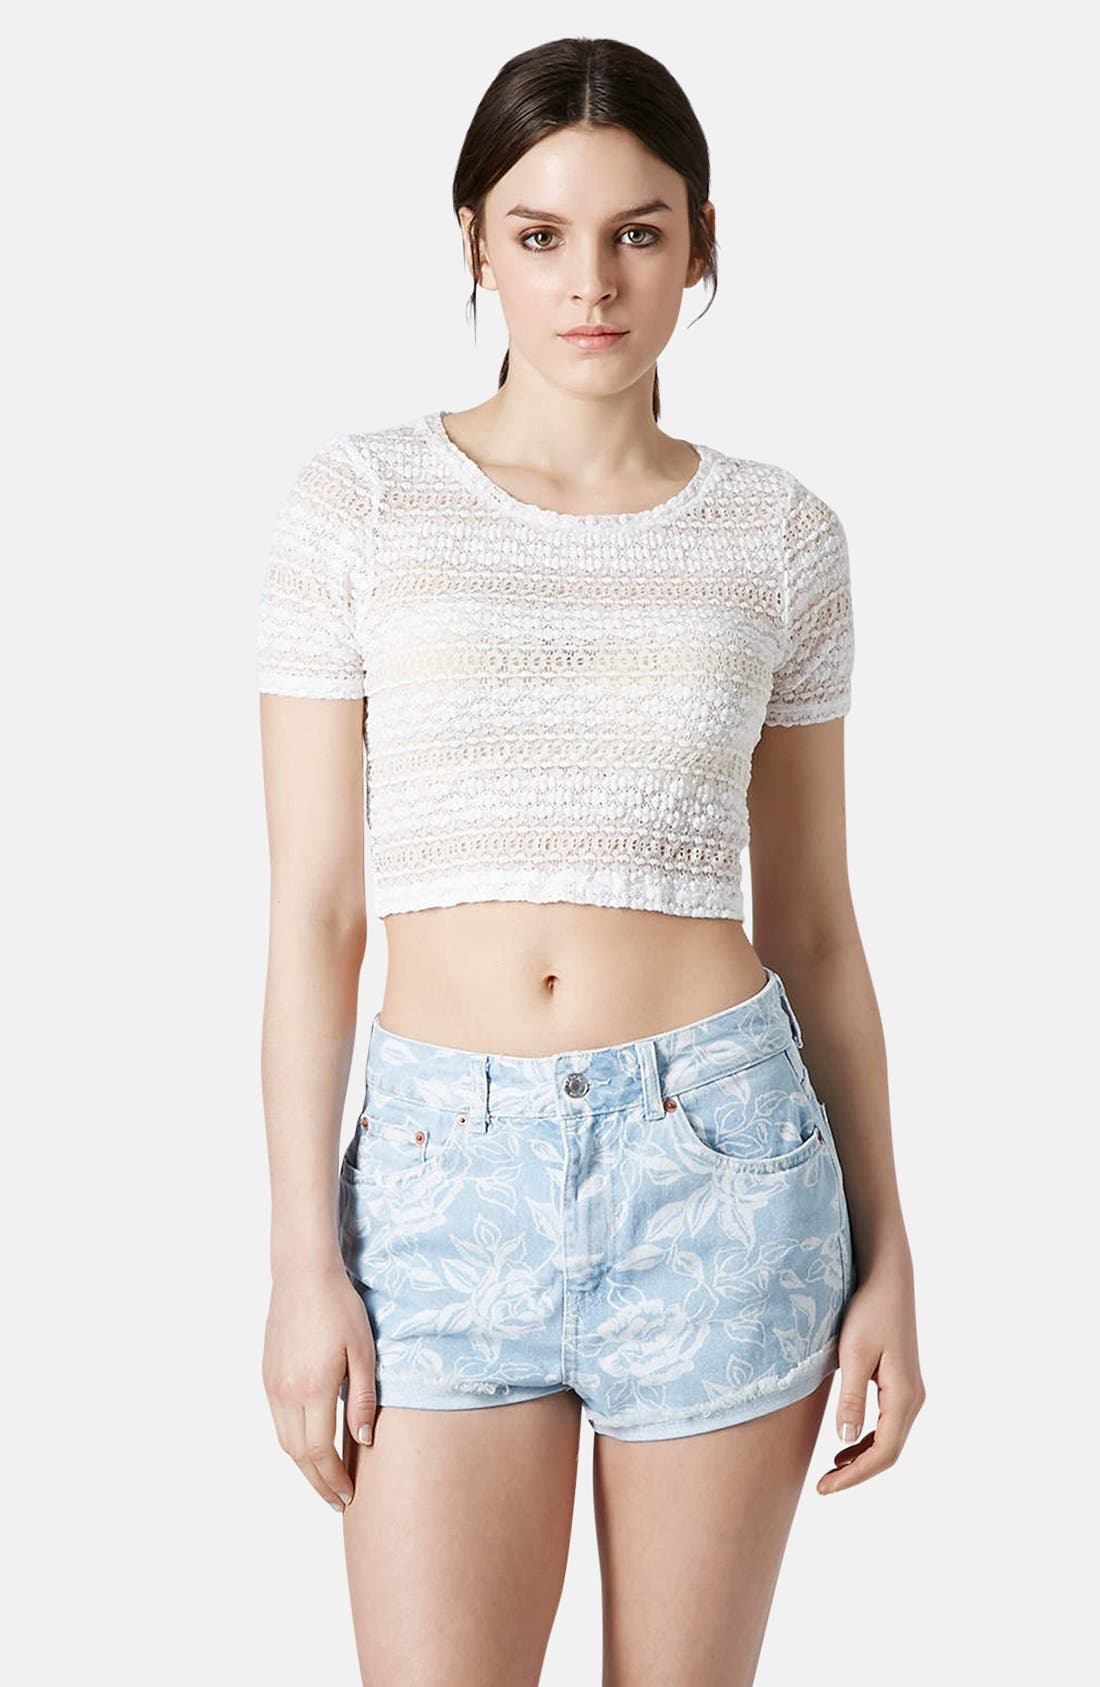 Alternate Image 1 Selected - Topshop Textured Lace Crop Tee (Regular & Petite)